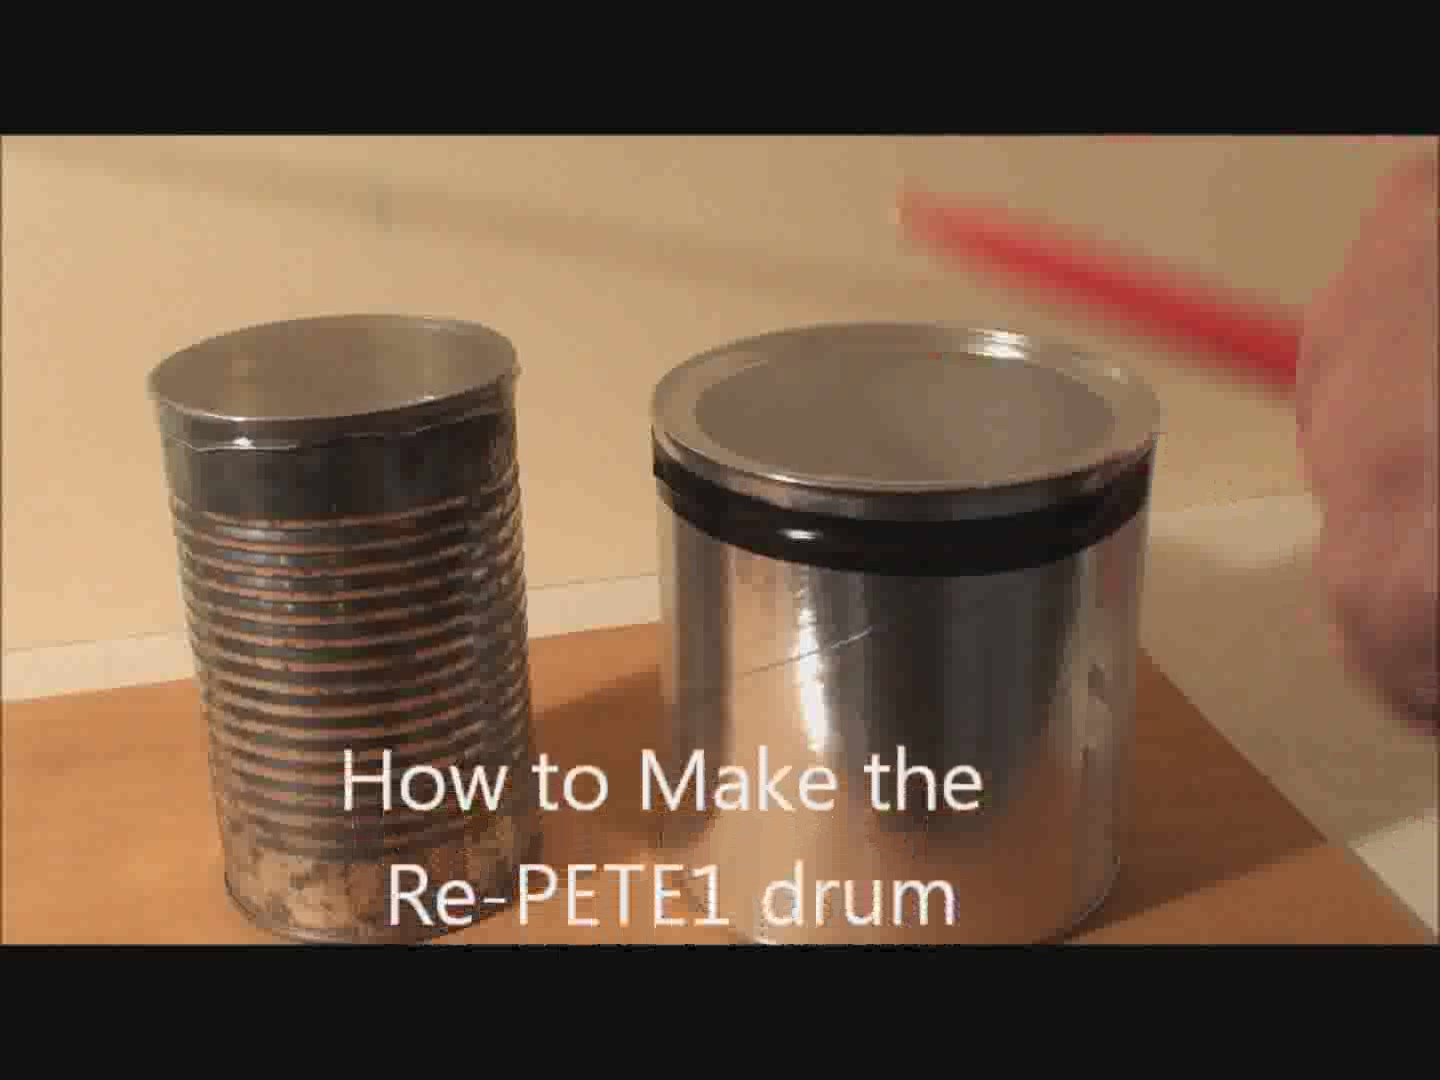 How to make a drum from a can and a water or soda bottle made of PETE 1 type recyclable plastic